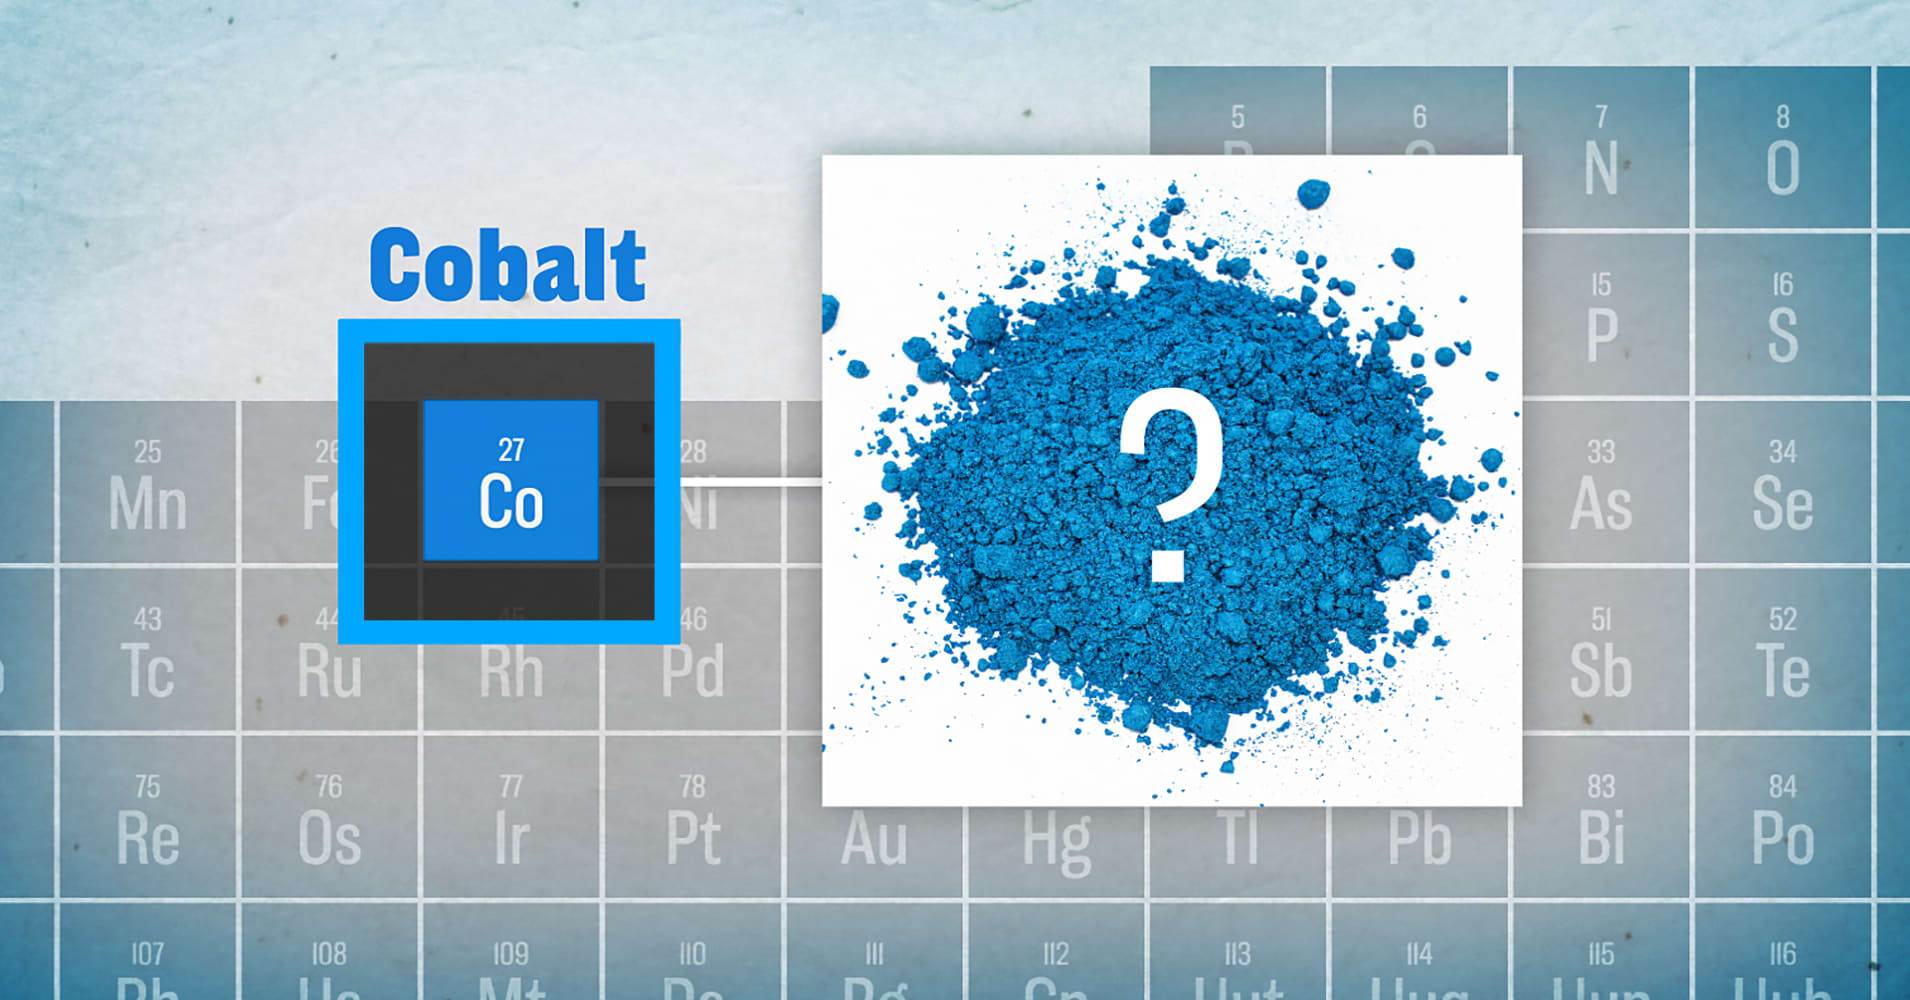 cobalt is the metal companies hope to find a trove of next